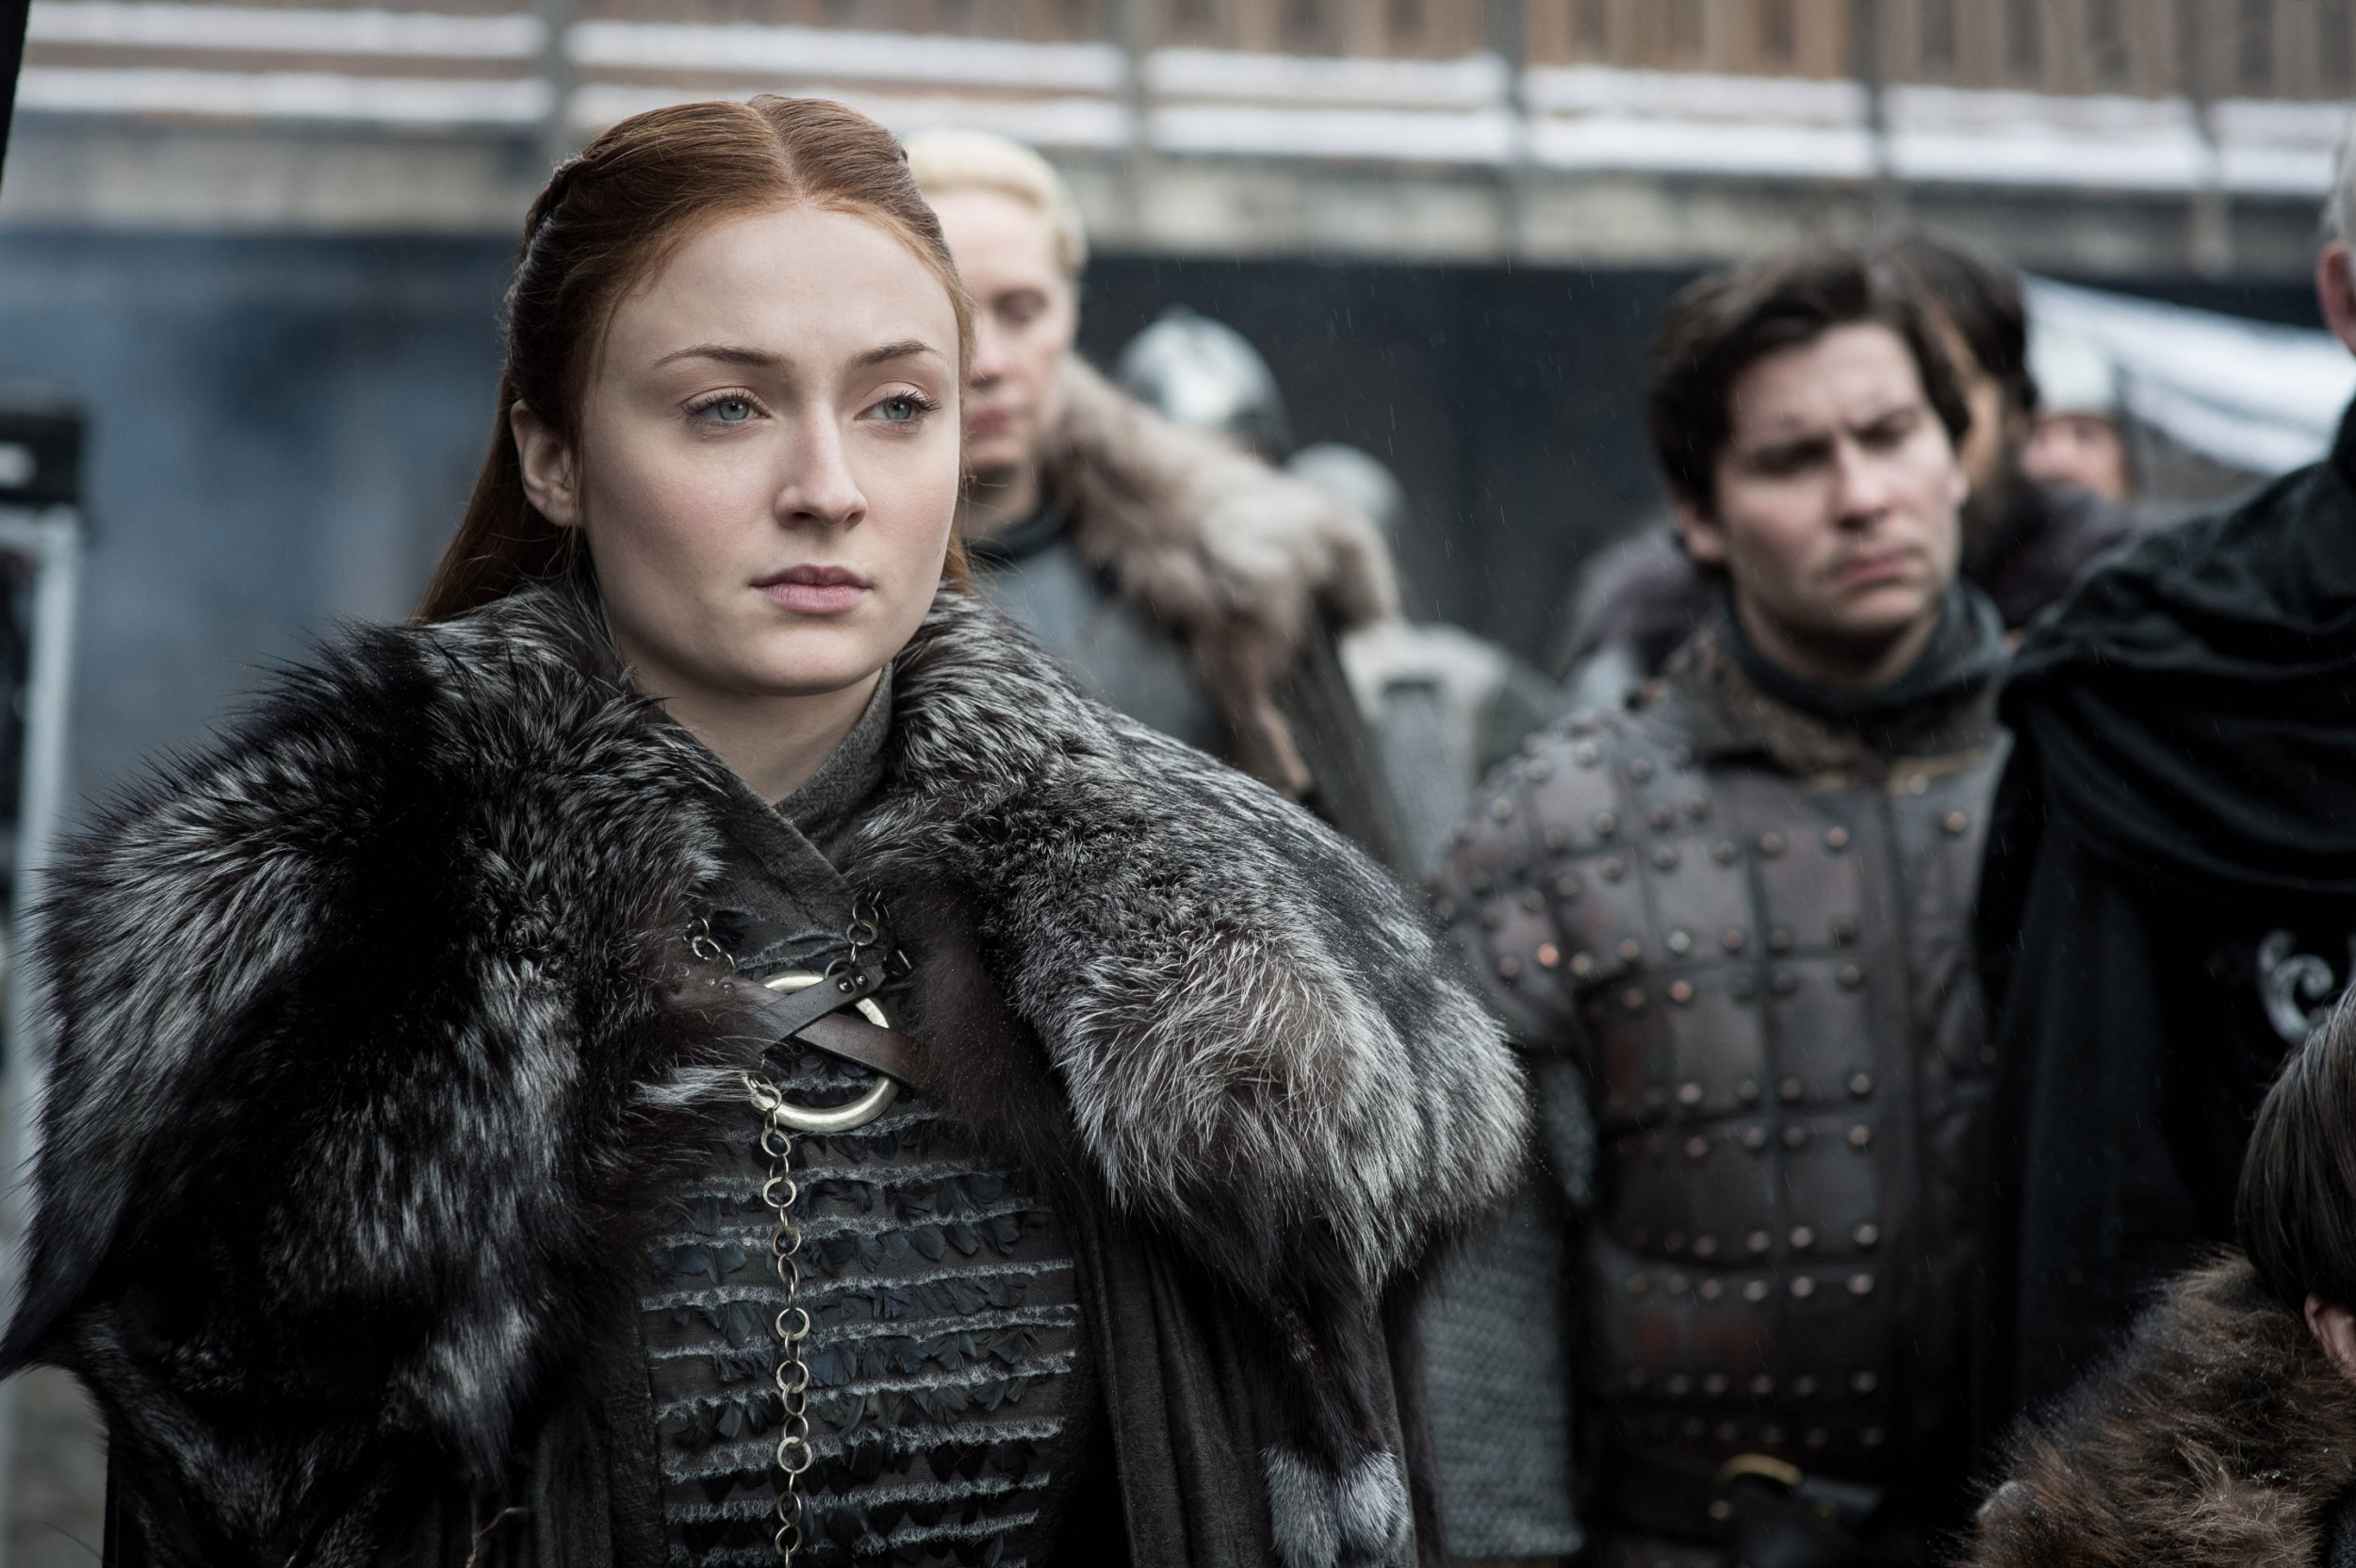 Sophie Turner posted a huge Game of Thrones spoiler on Instagram and fans are not happy